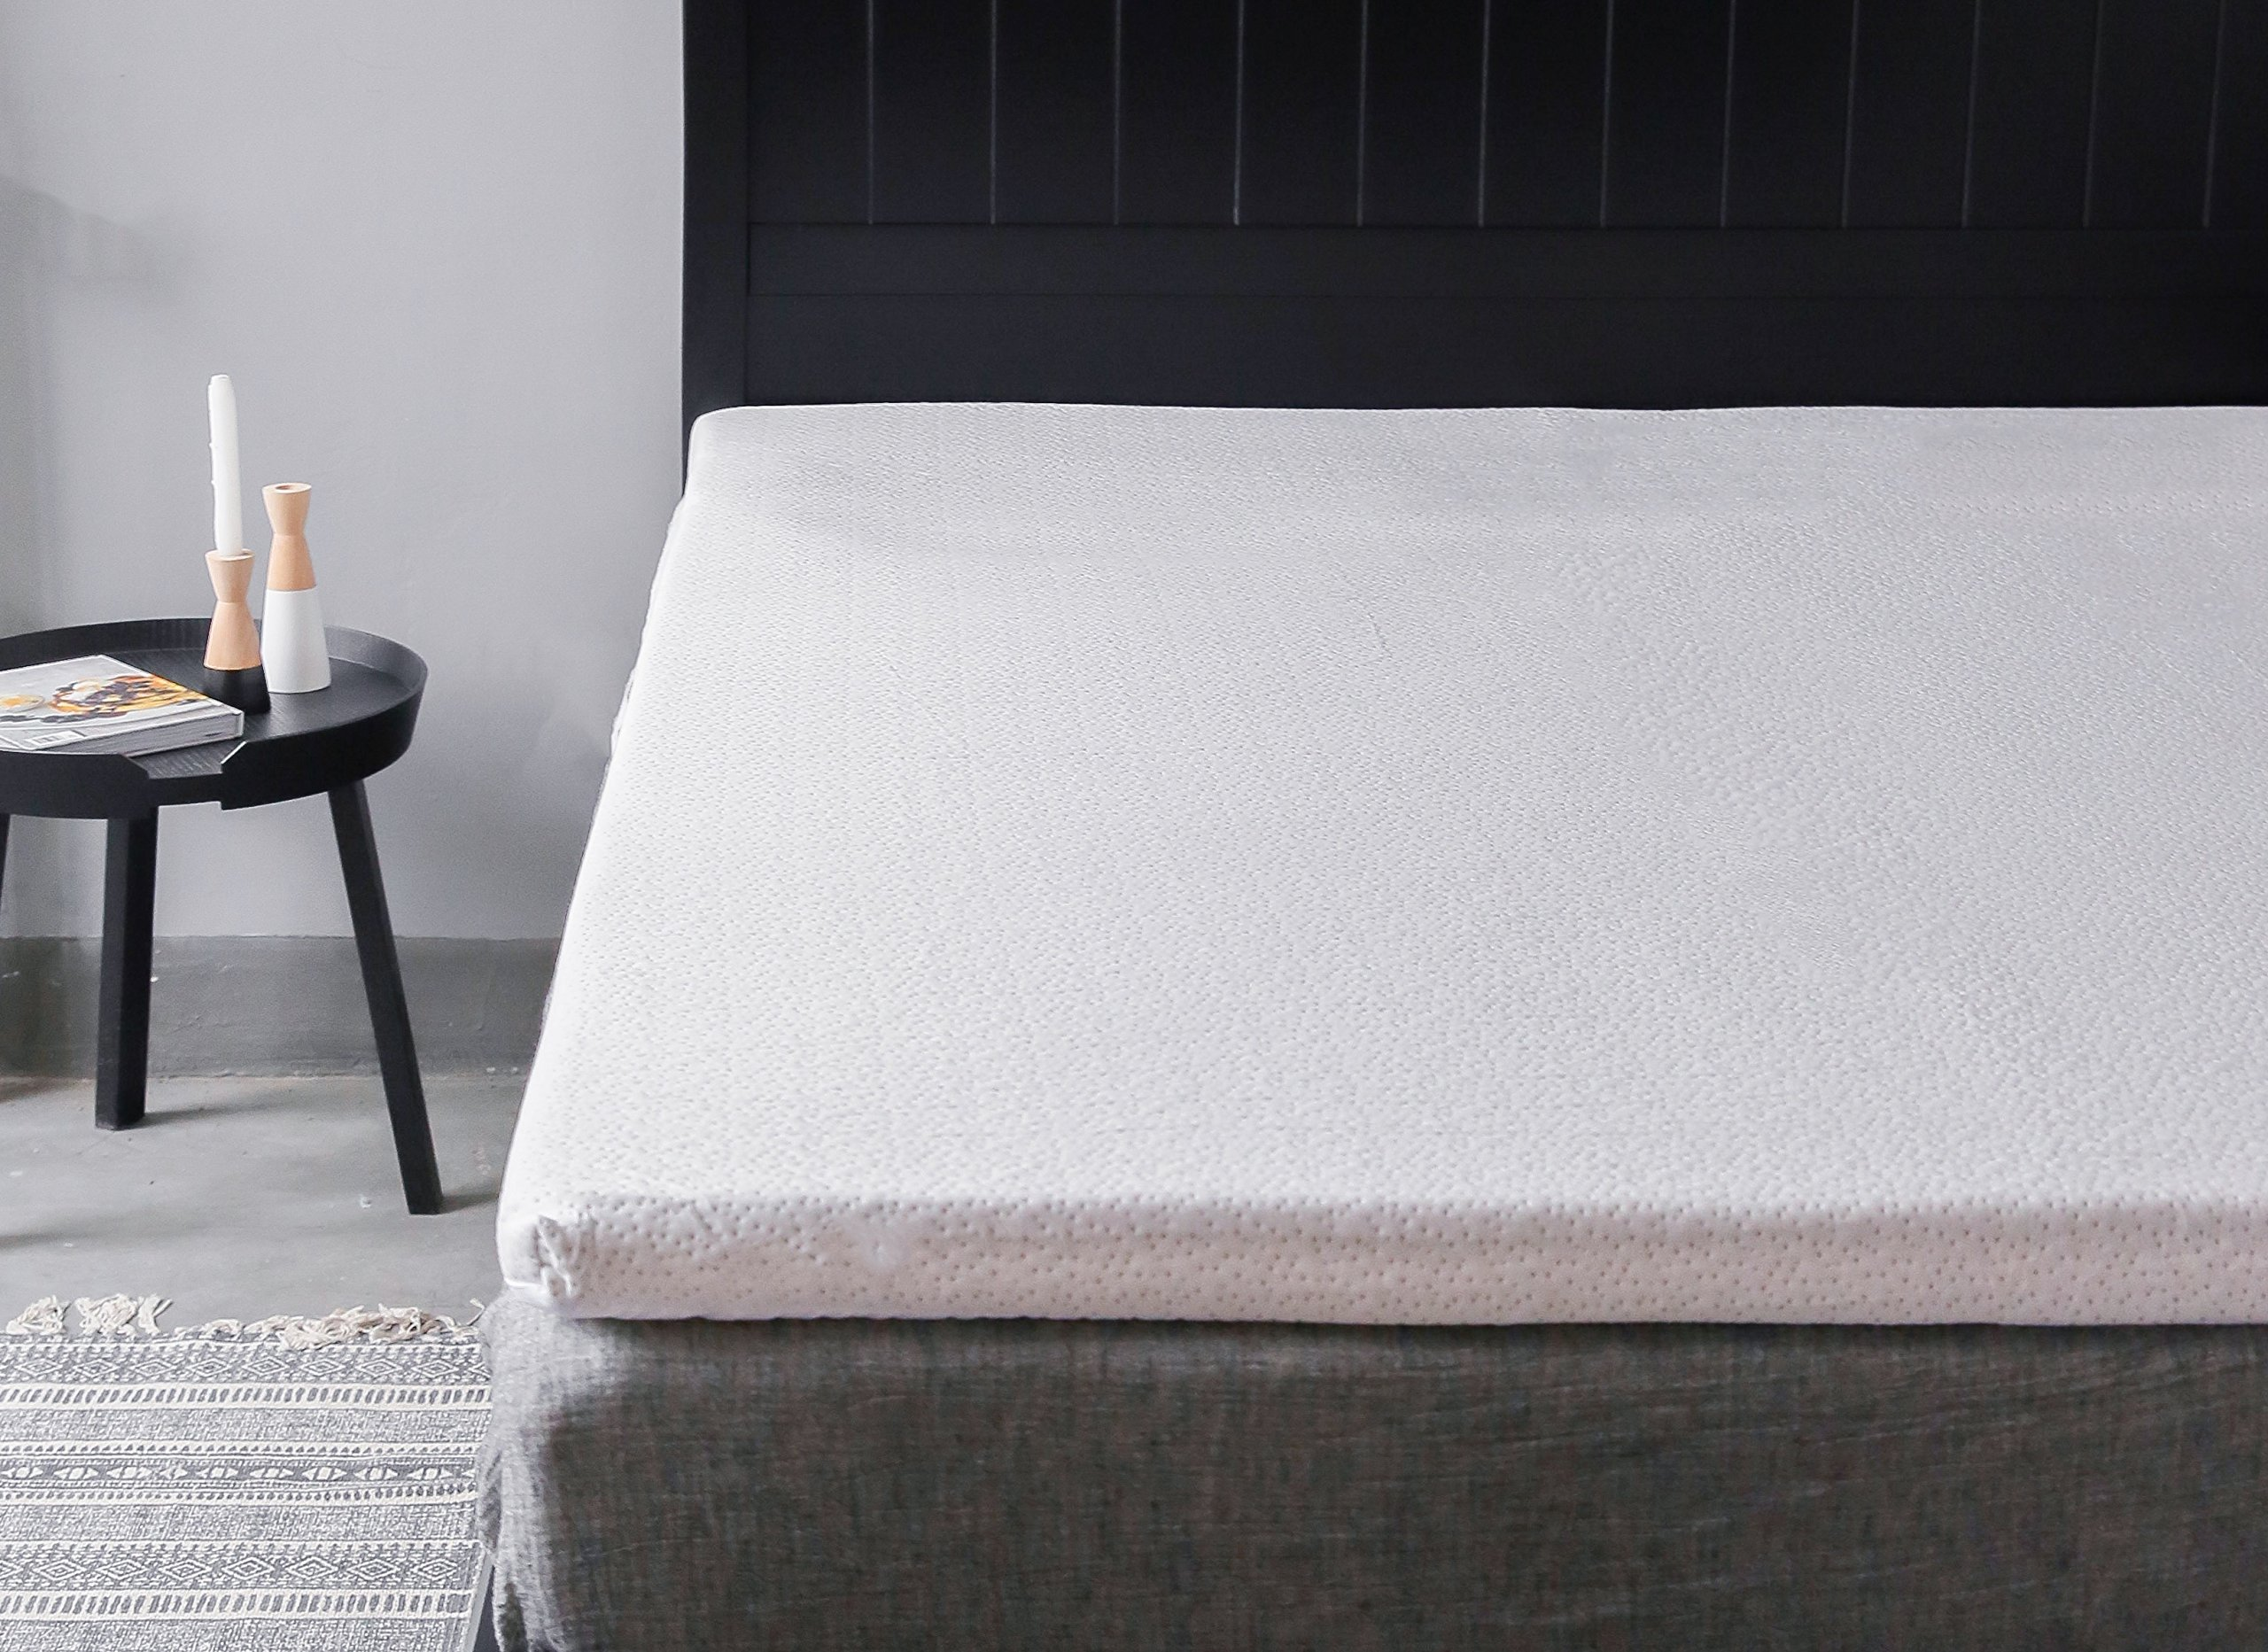 ALLRANGE 2-Inch Hypoallergenic Memory Foam Mattress Topper, Removable Rayon from Bamboo Cover, Super Soft, Anti-Allergen, Wicks moisture, Temperature Regulating, Rolled Package, Twin XL Size